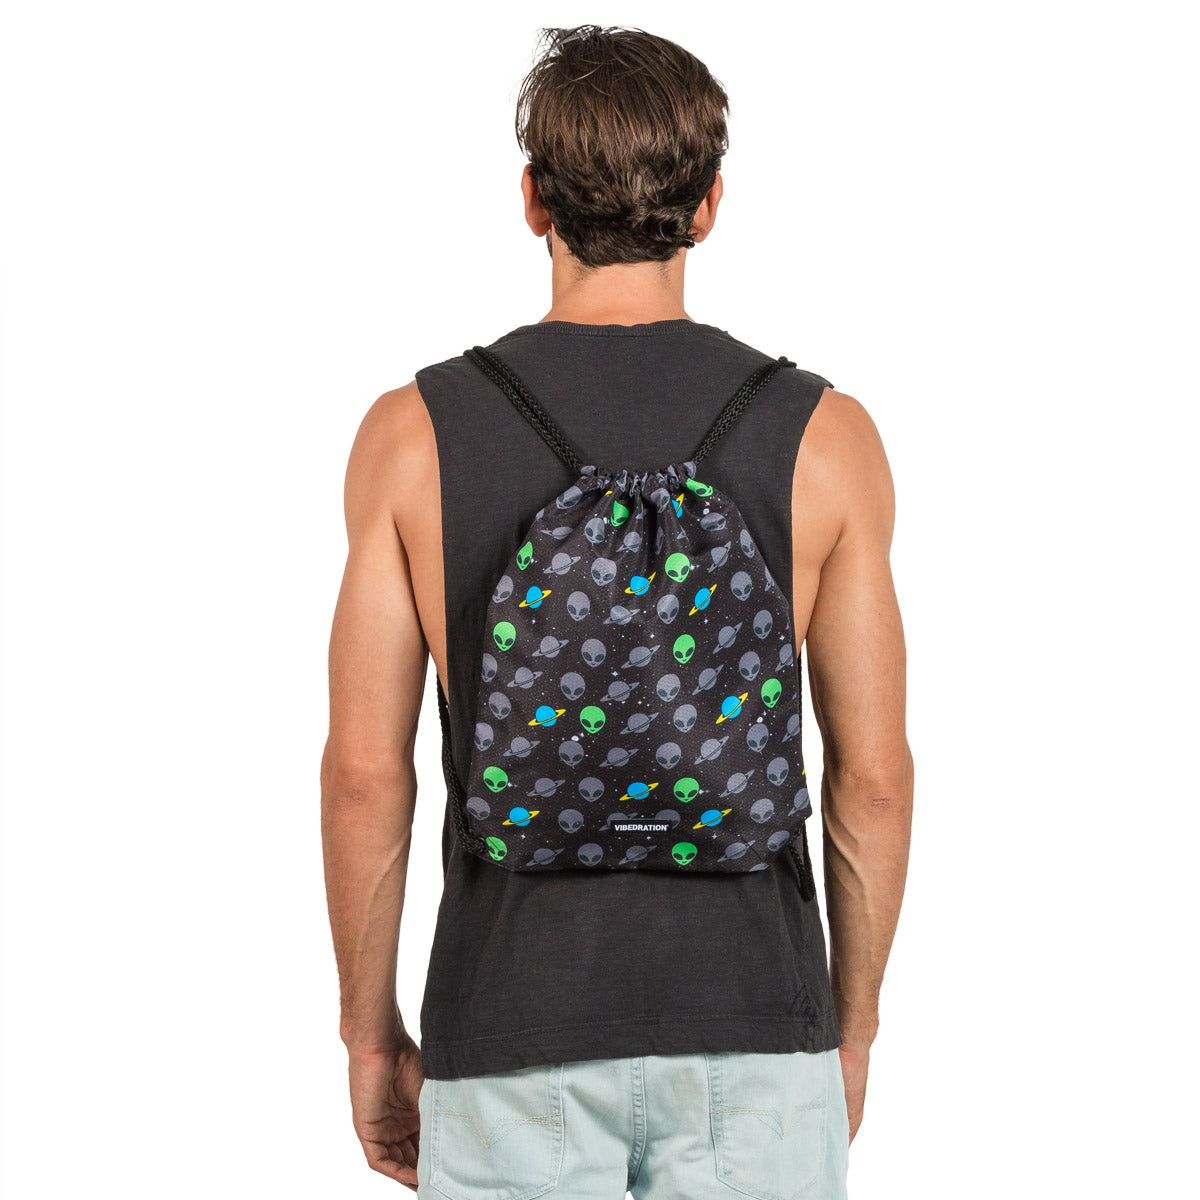 Alien Drawstring Bag for Festivals